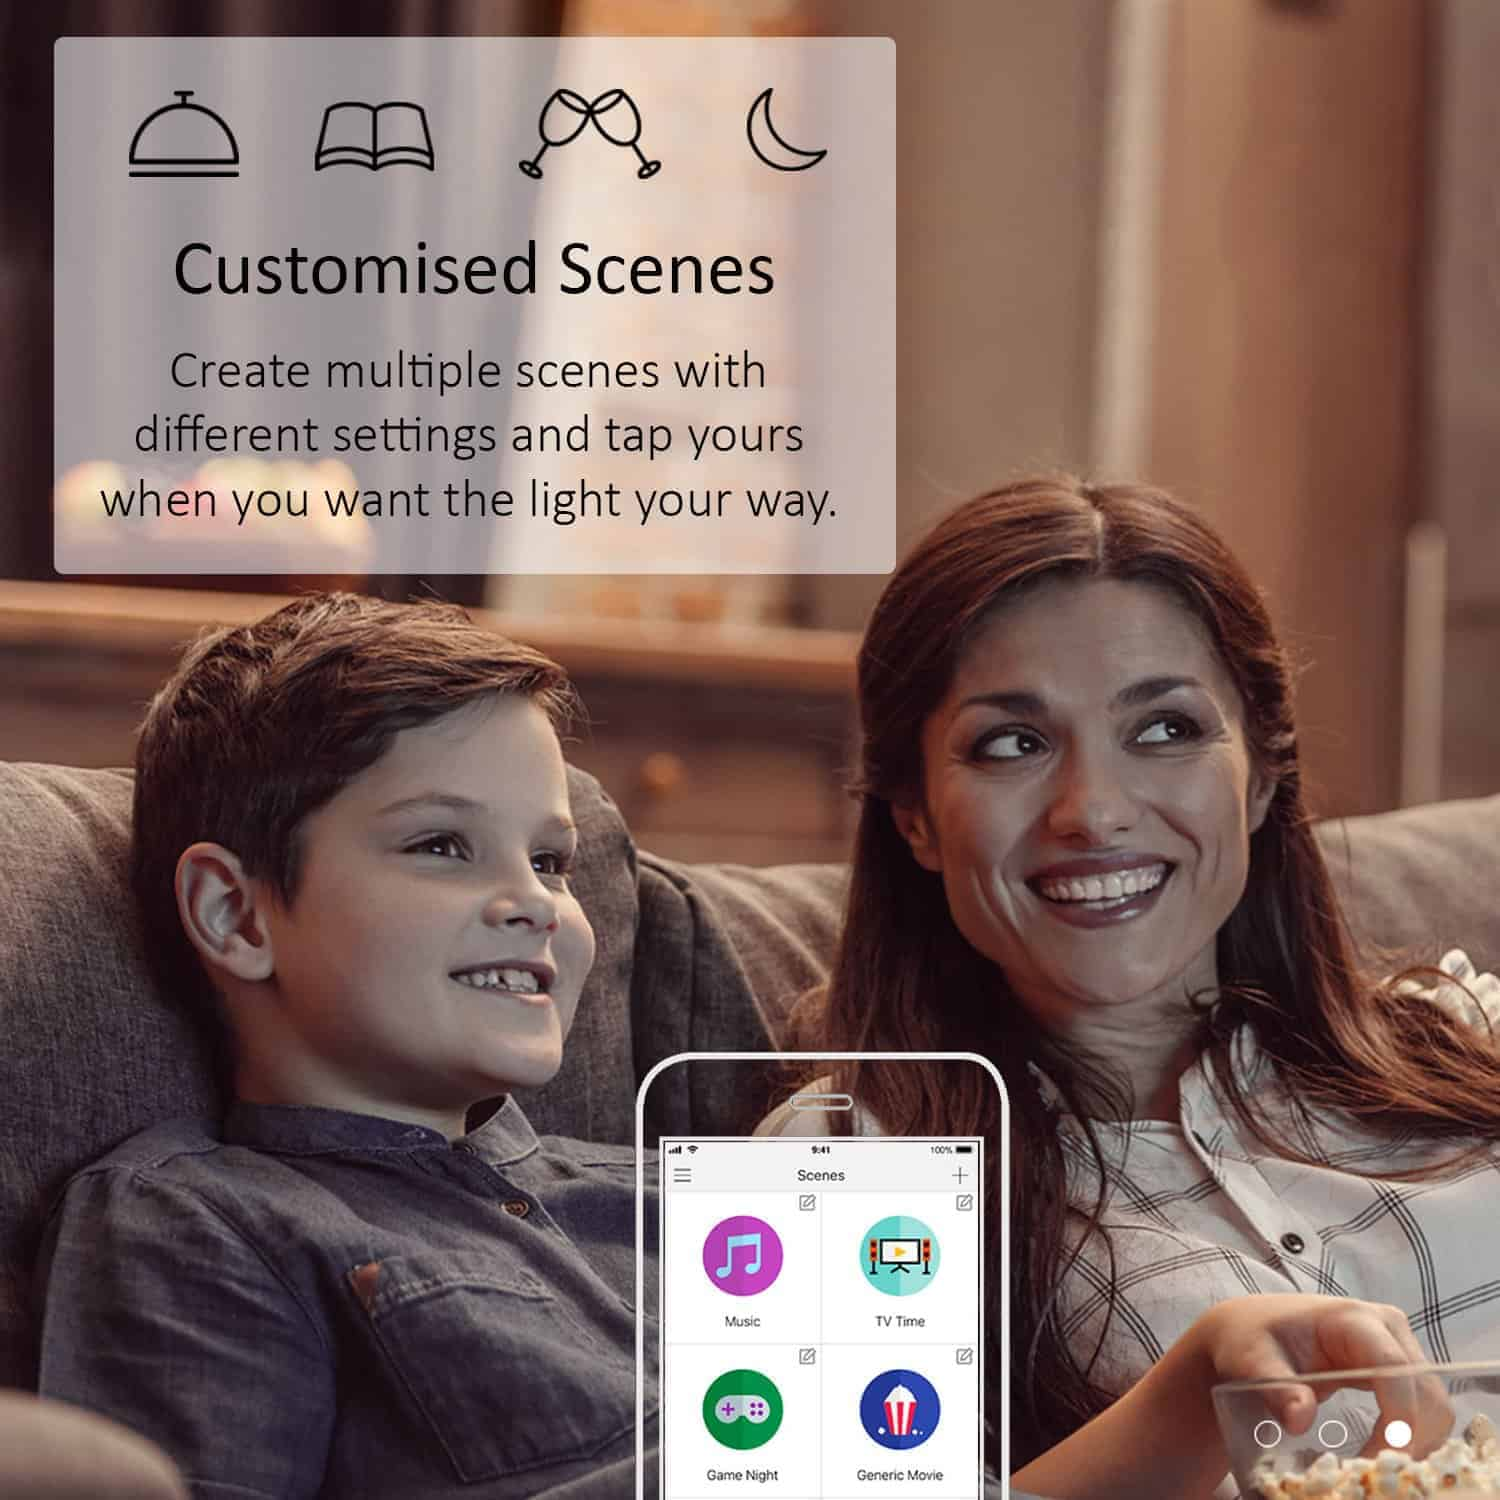 TP_Link_Smart_Wi_Fi_LED_Bulb_with_Dimmable_Light_LB110_senes_and_features_4